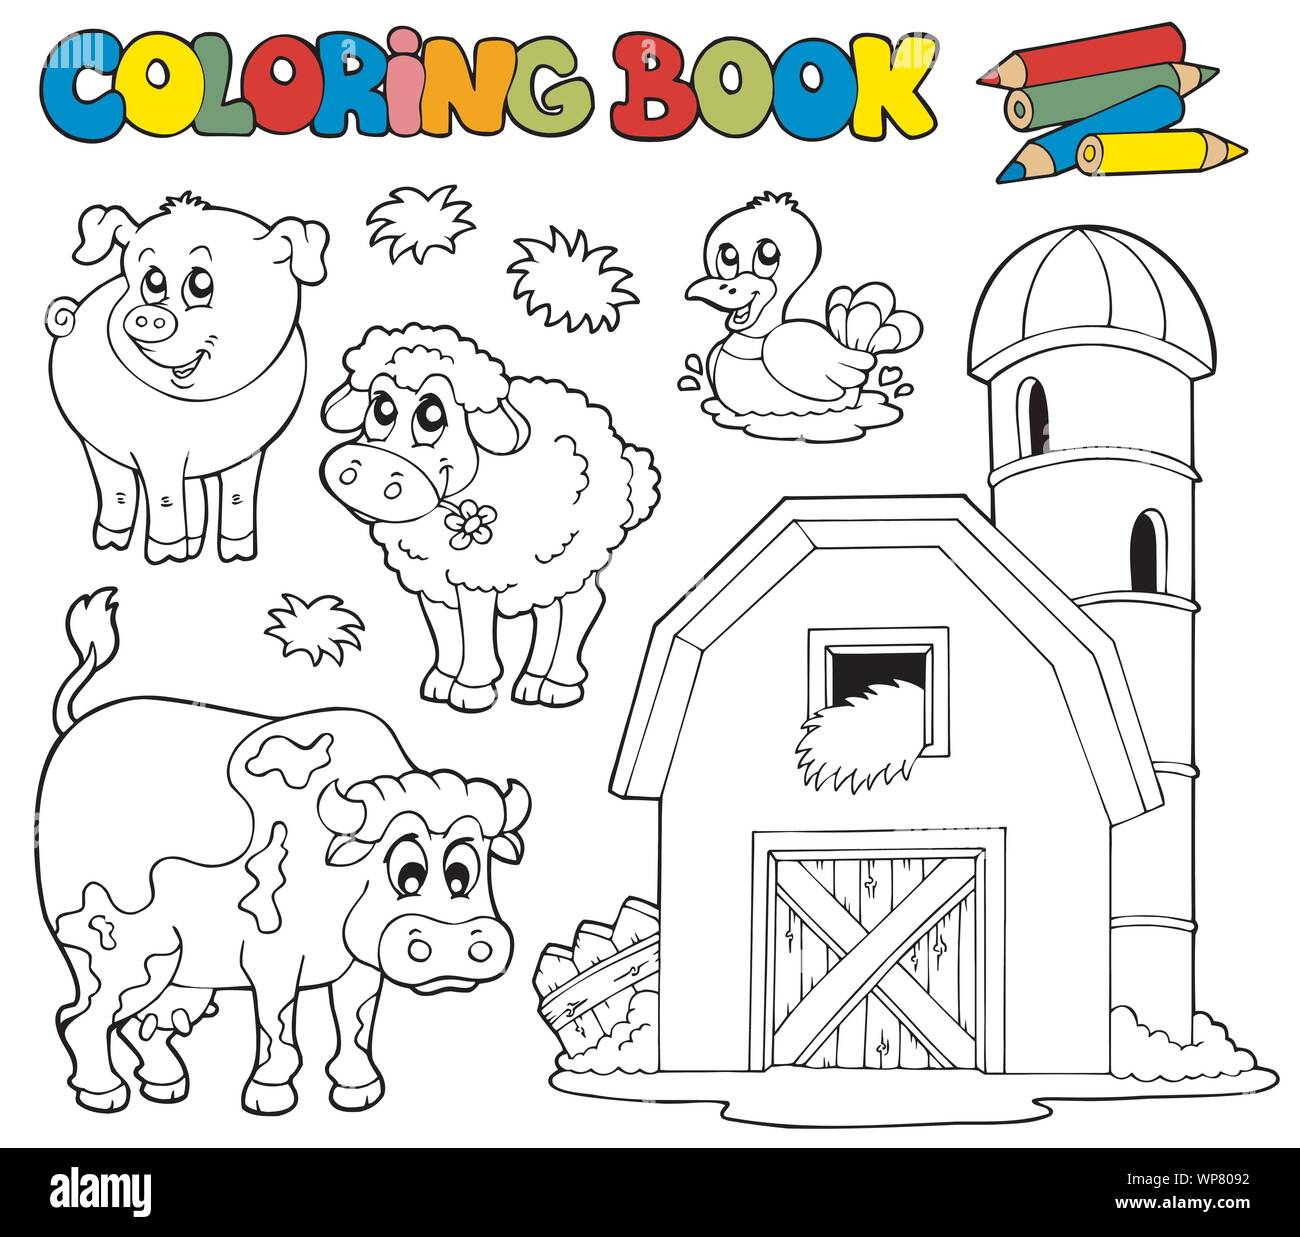 Buried Treasure Coloring Page | Cool coloring pages, Coloring ... | 1237x1300